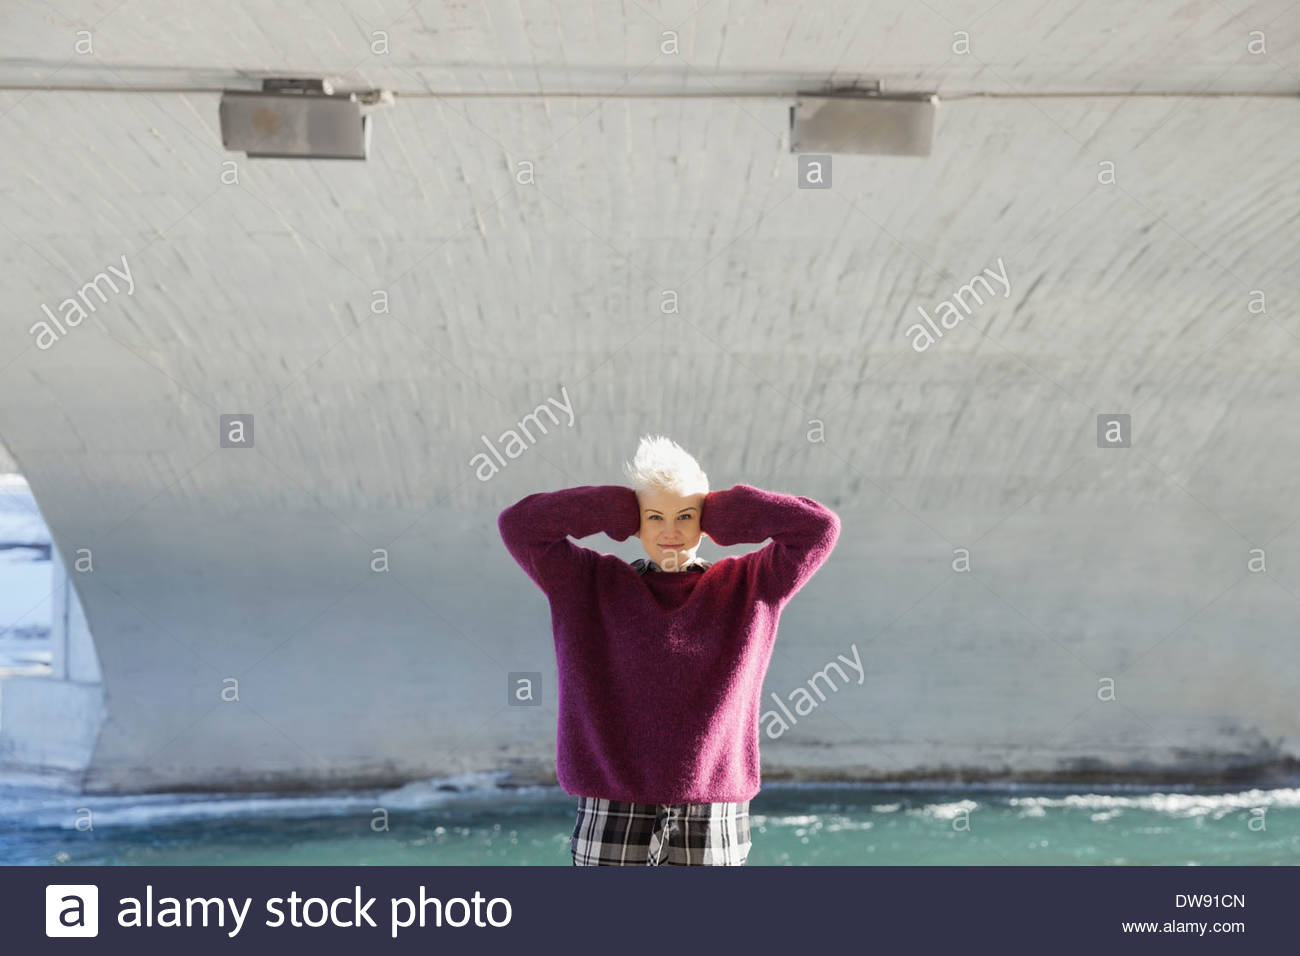 Portrait of woman with hands covering ears standing under city bridge - Stock Image